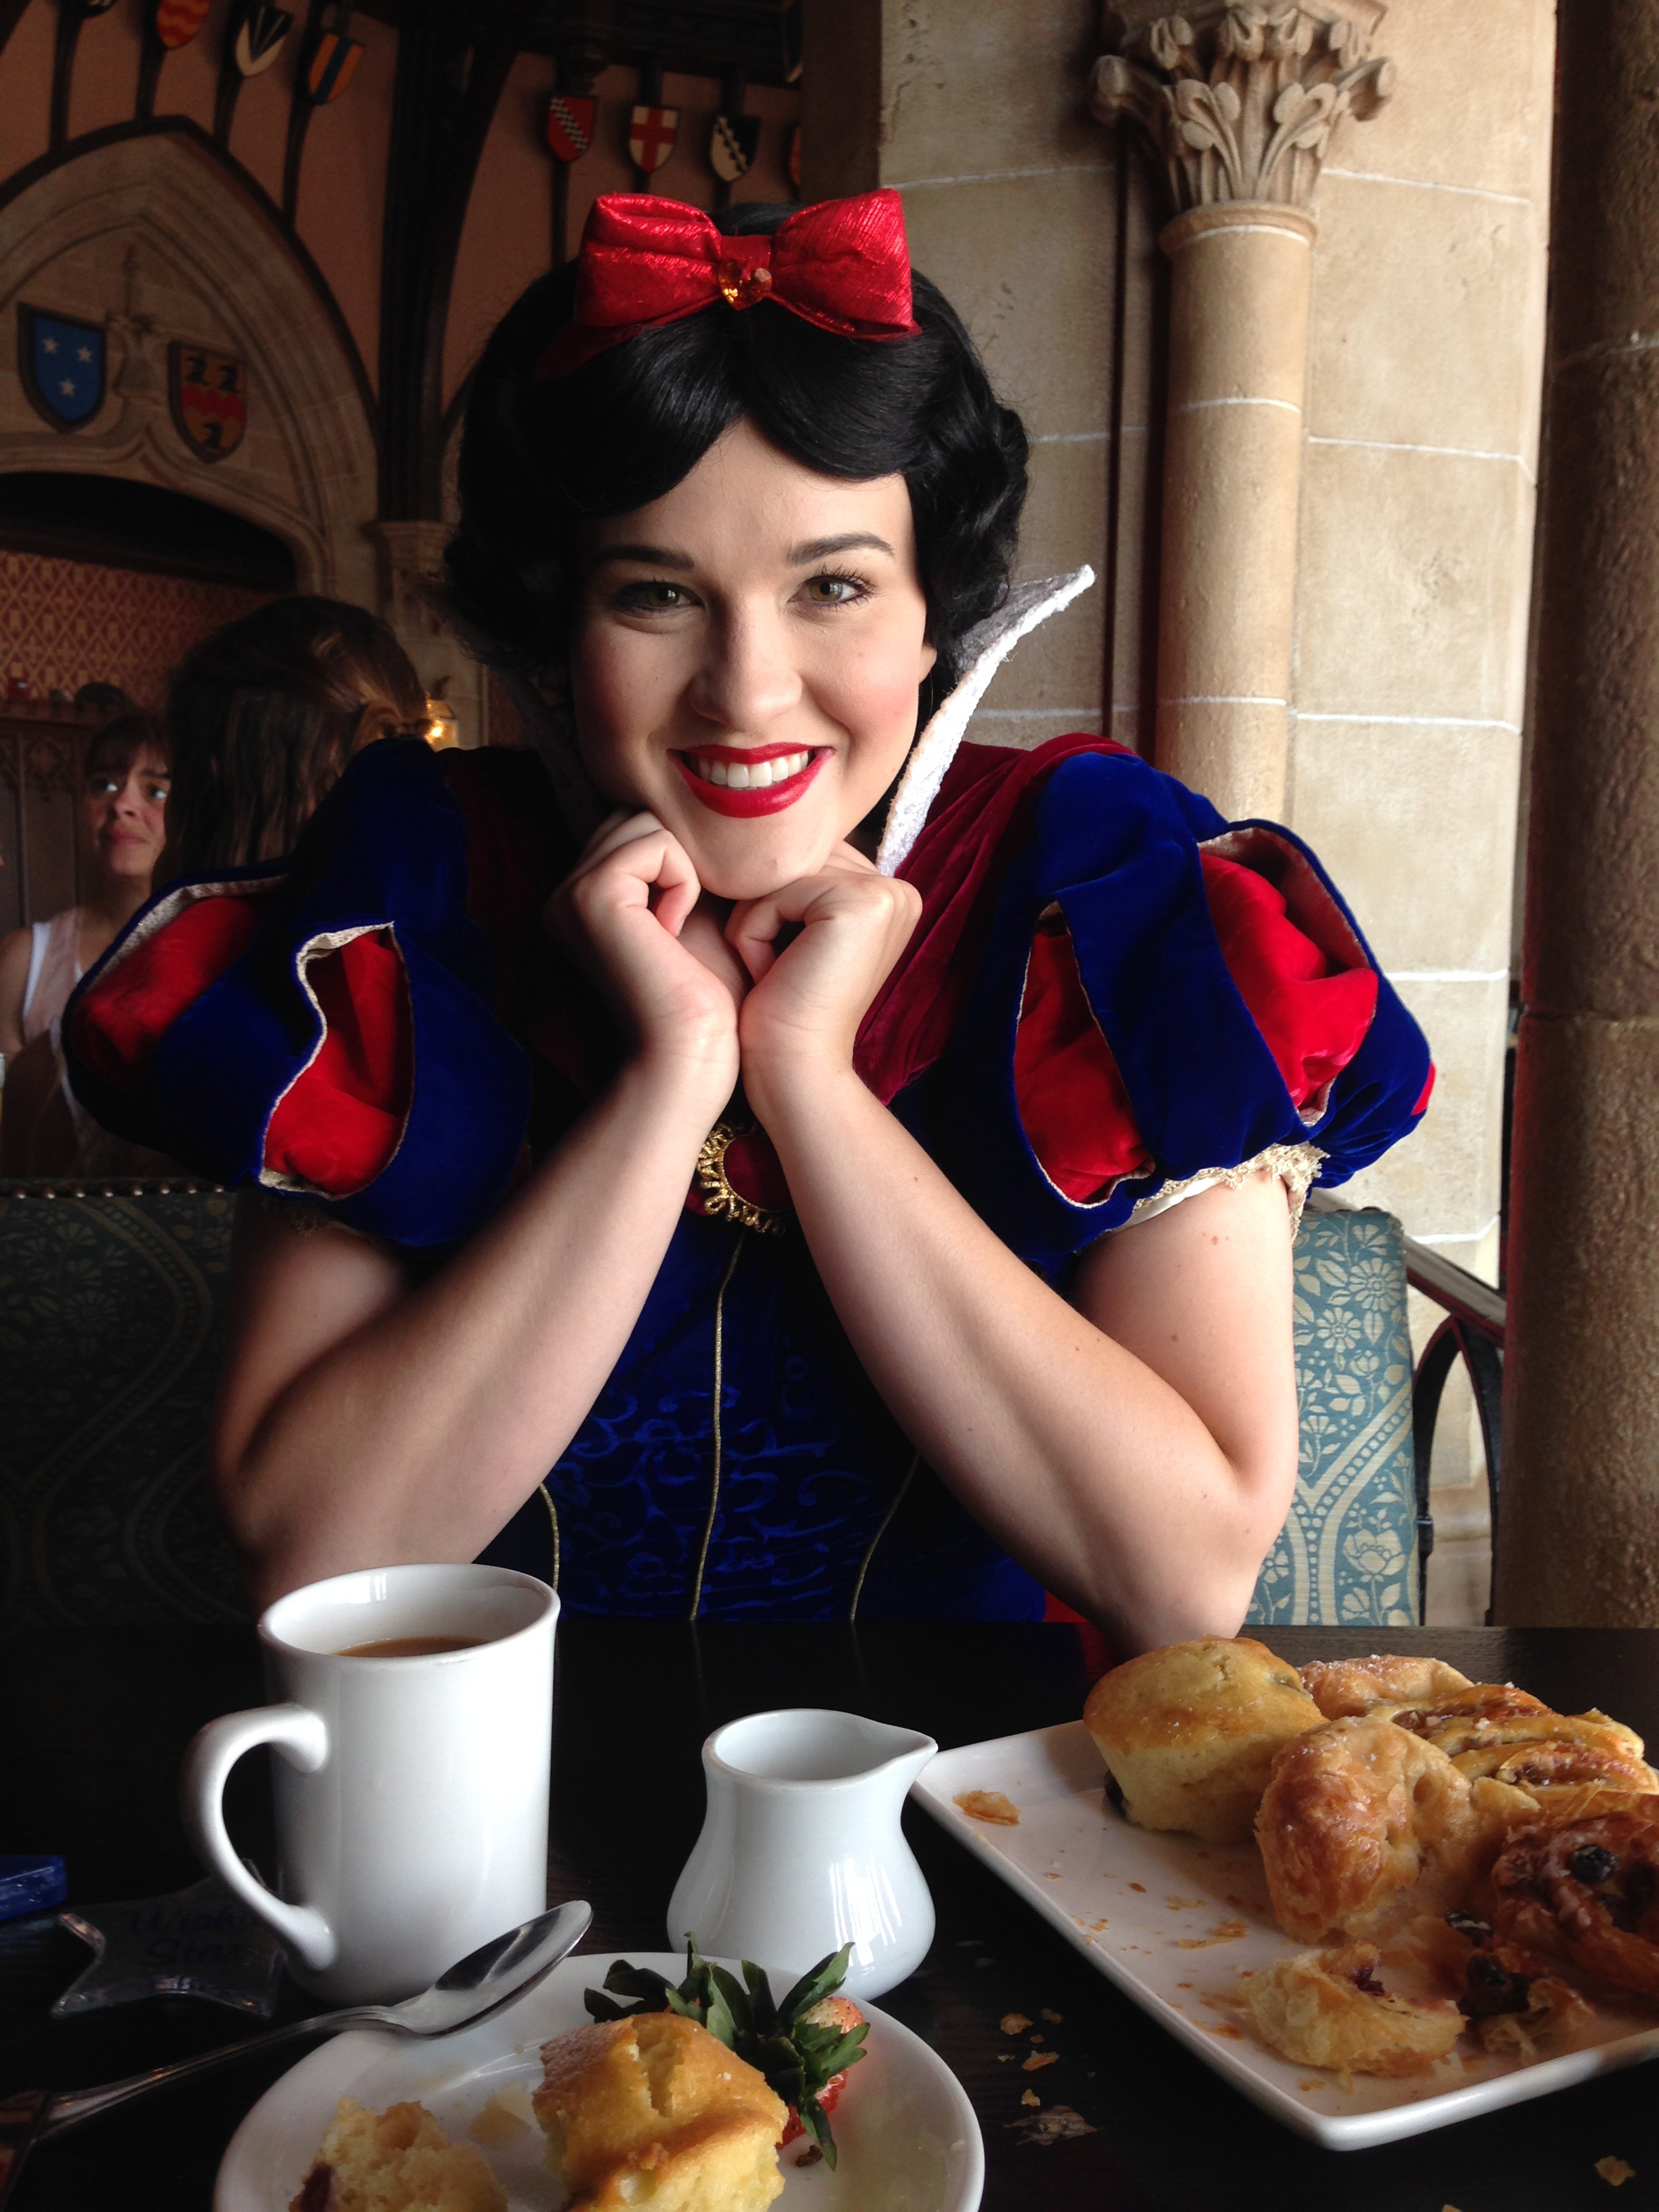 Coffee with Snow White - NO BIG DEAL OR ANYTHING I DIDN'T FREAK OUT I SWEAR